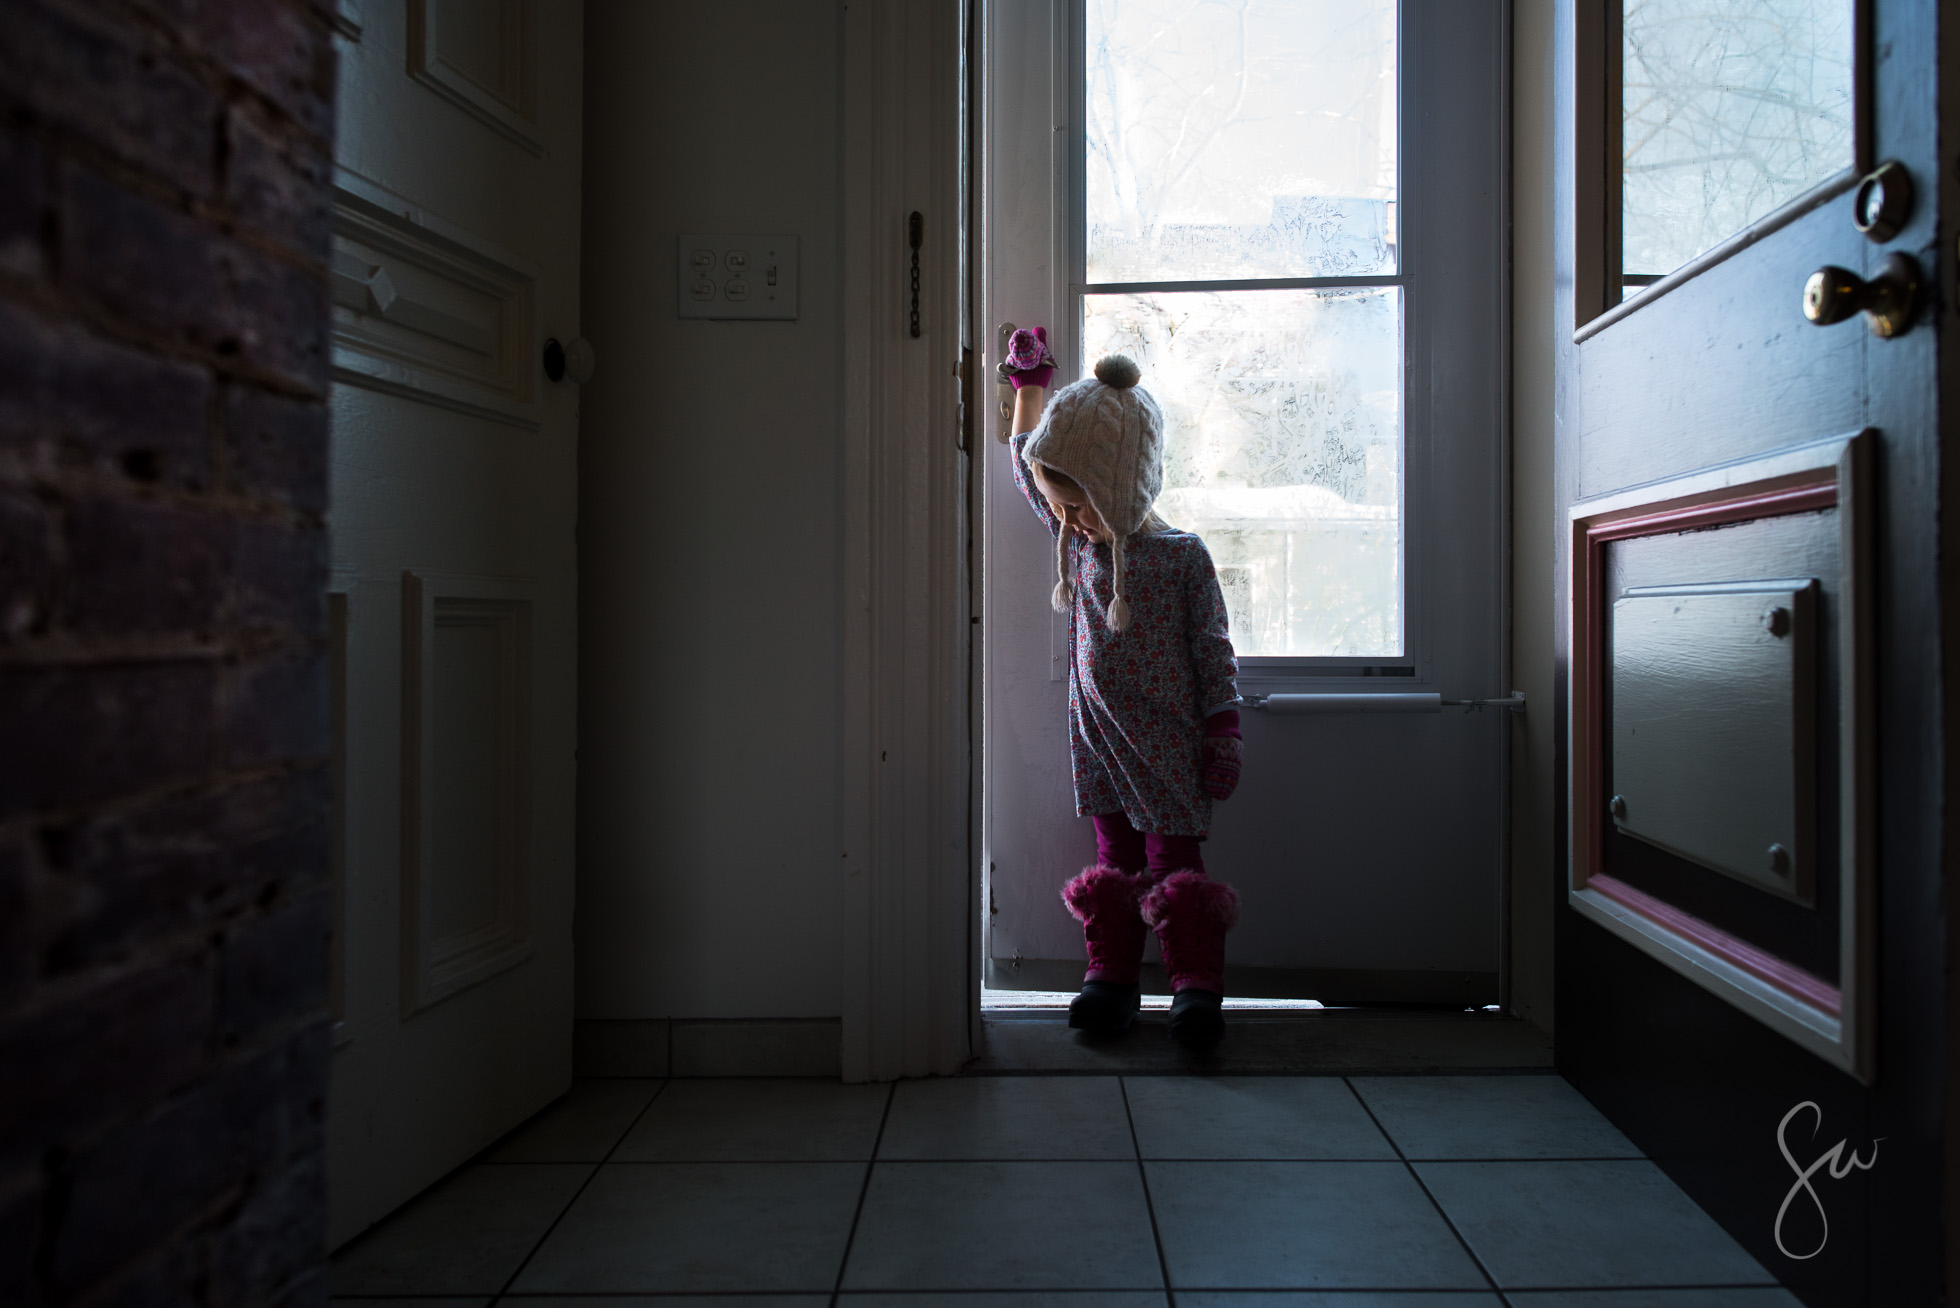 Winter-Environmental-Portrait-of-Little-Girl-in-Boots-and-Hats-Standing-Near-Frosted-Glass-2522